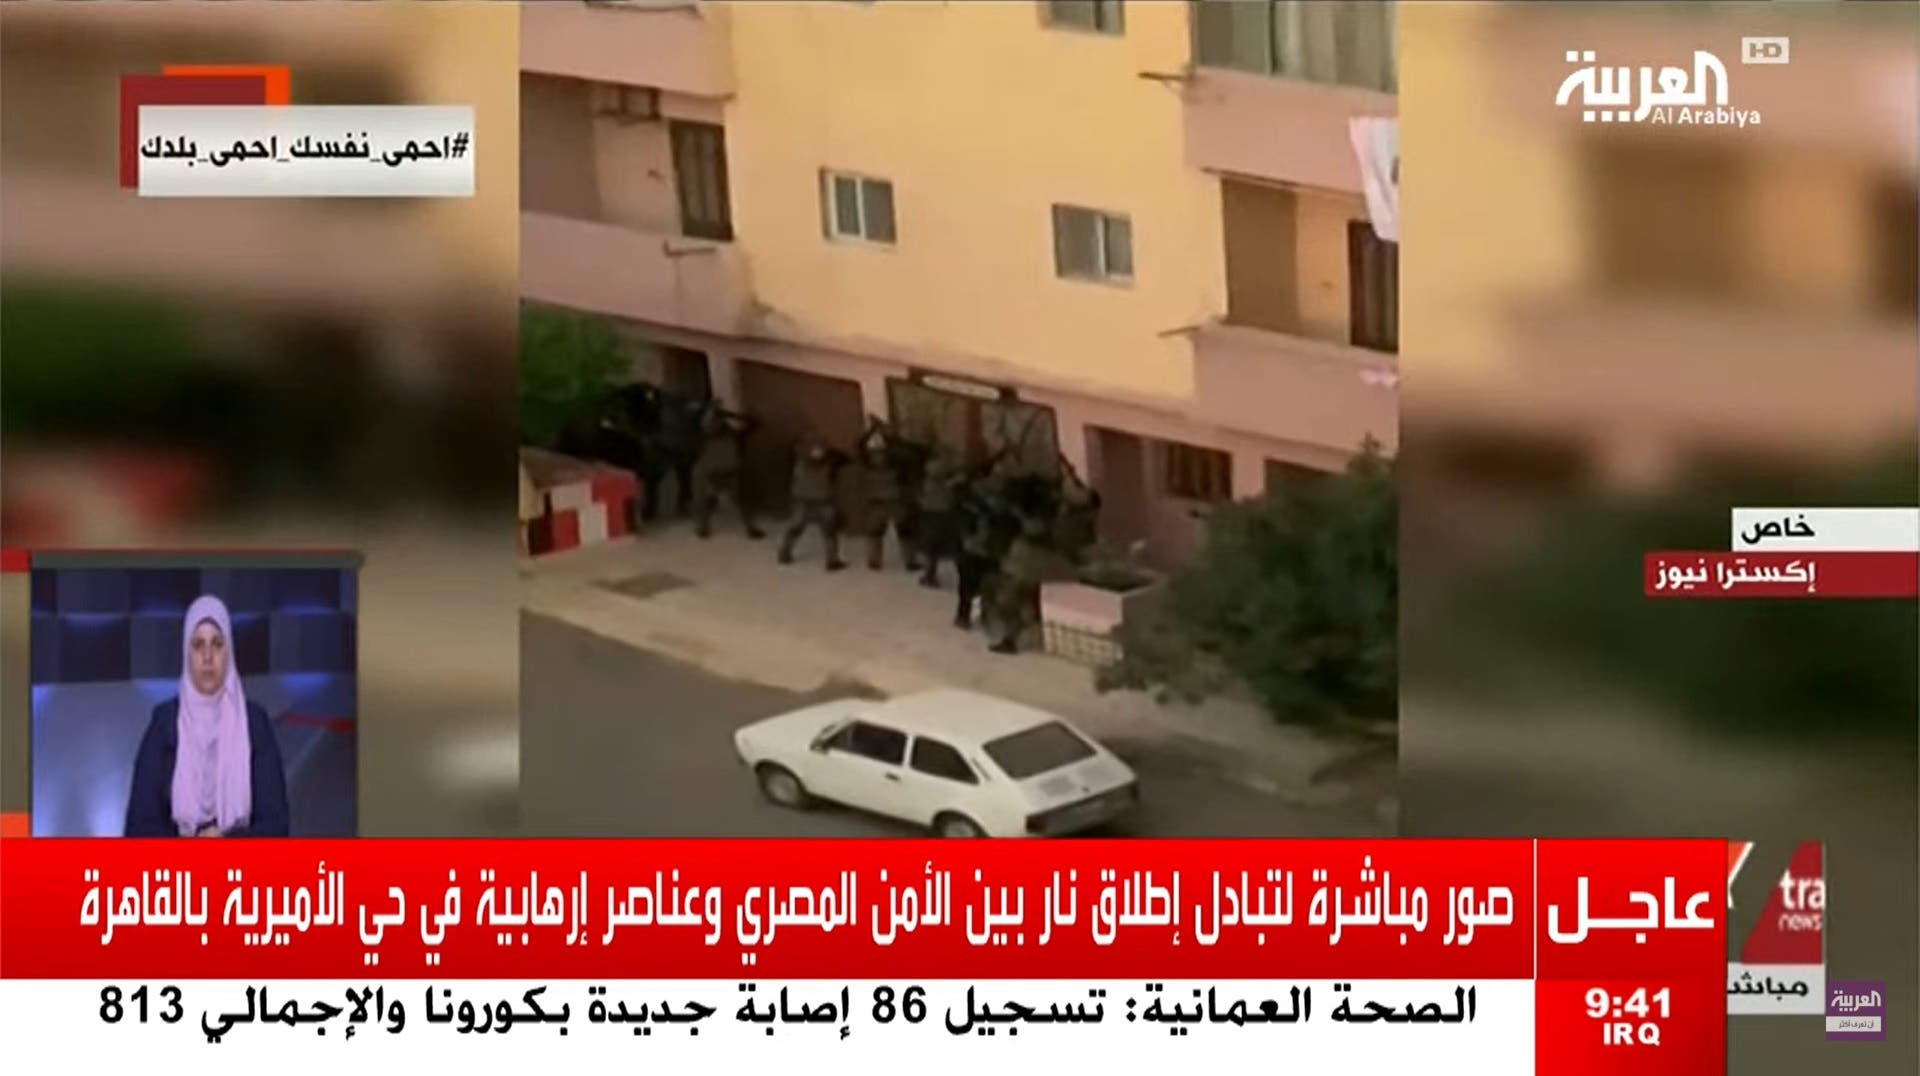 Local media showing earlier video of special forces attempting to enter the terrorist hideout in the al-Amireya neighborhood in Cairo. (Local media)